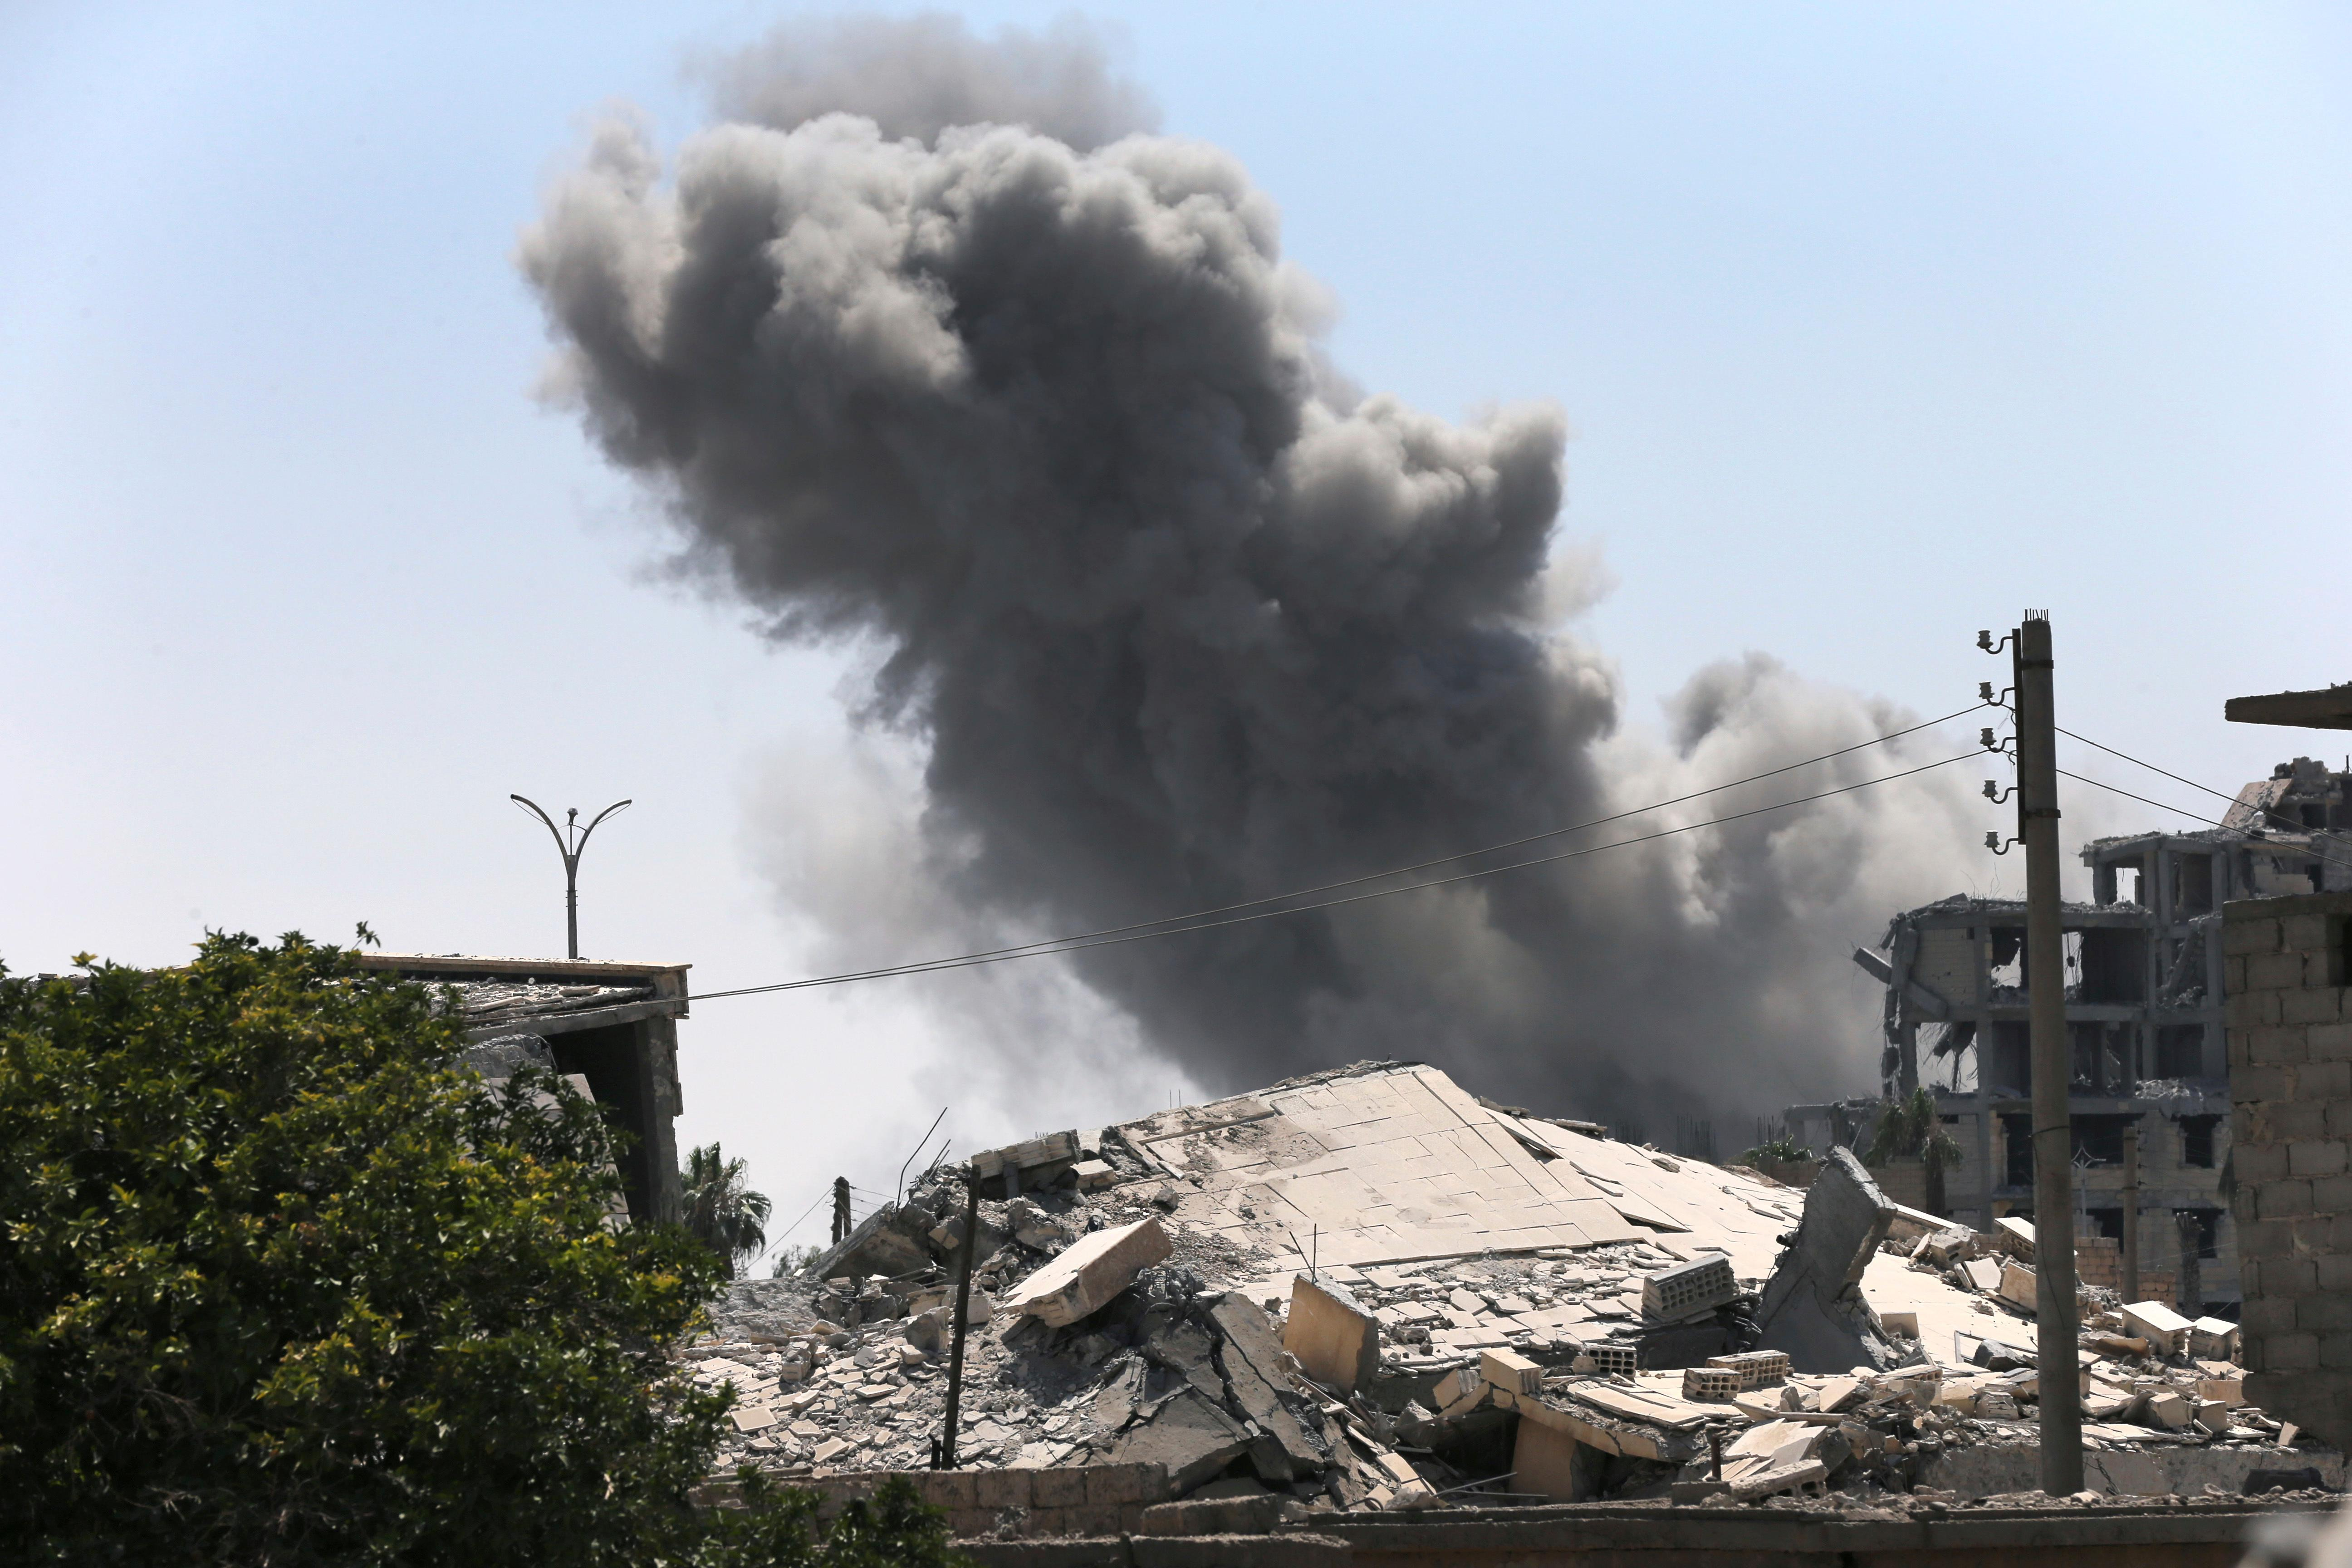 Black smoke rises from a coalition airstrike which attacked an Islamic State militant position, on the front line on the eastern side of Raqqa, Syria, Wednesday, July 26, 2017. Kurdish forces have gained confidence in light of open U.S. support to their forces, particularly as the battle for Raqqa took off. Despite Turkish protests, the U.S. sent new weapons and vehicles to the YPG to enable it in the fight against IS. (AP Photo/Hussein Malla)